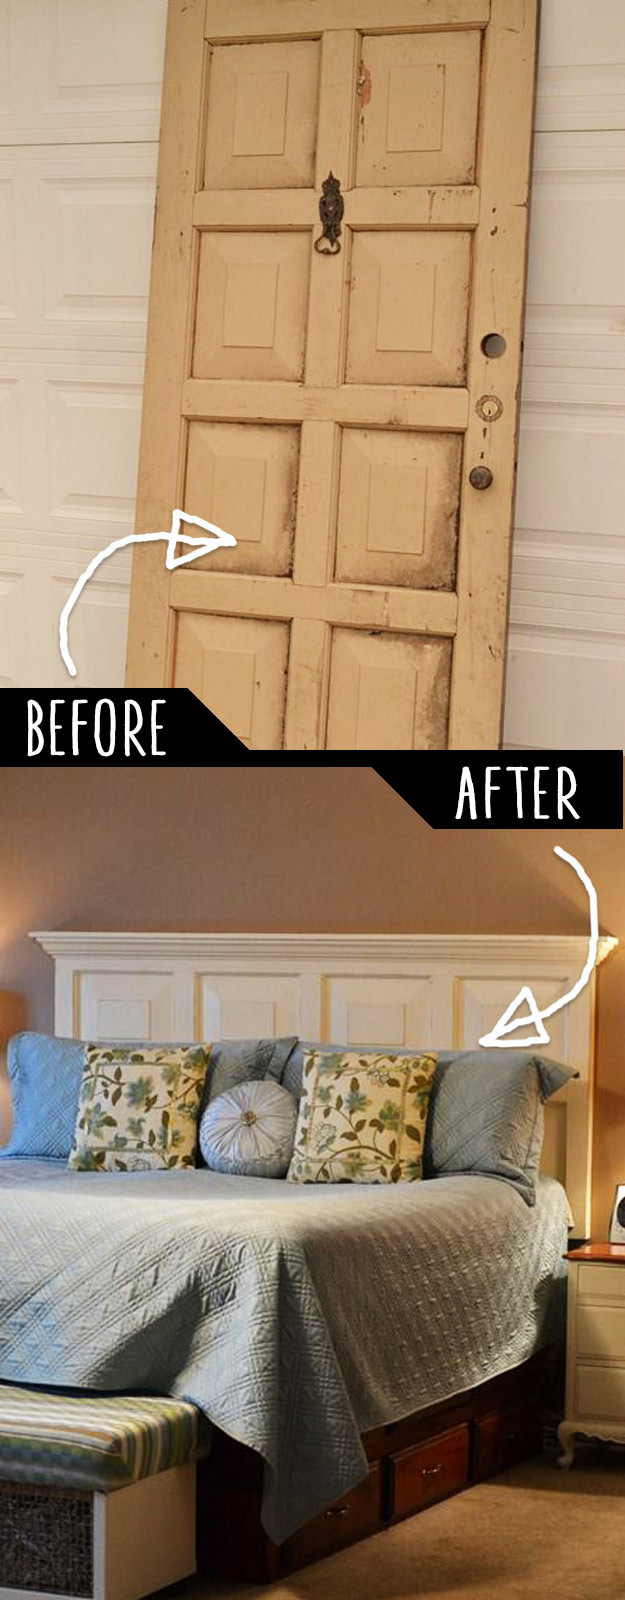 Delicieux DIY Furniture Hacks | Door Headboard | Cool Ideas For Creative Do It  Yourself Furniture Made